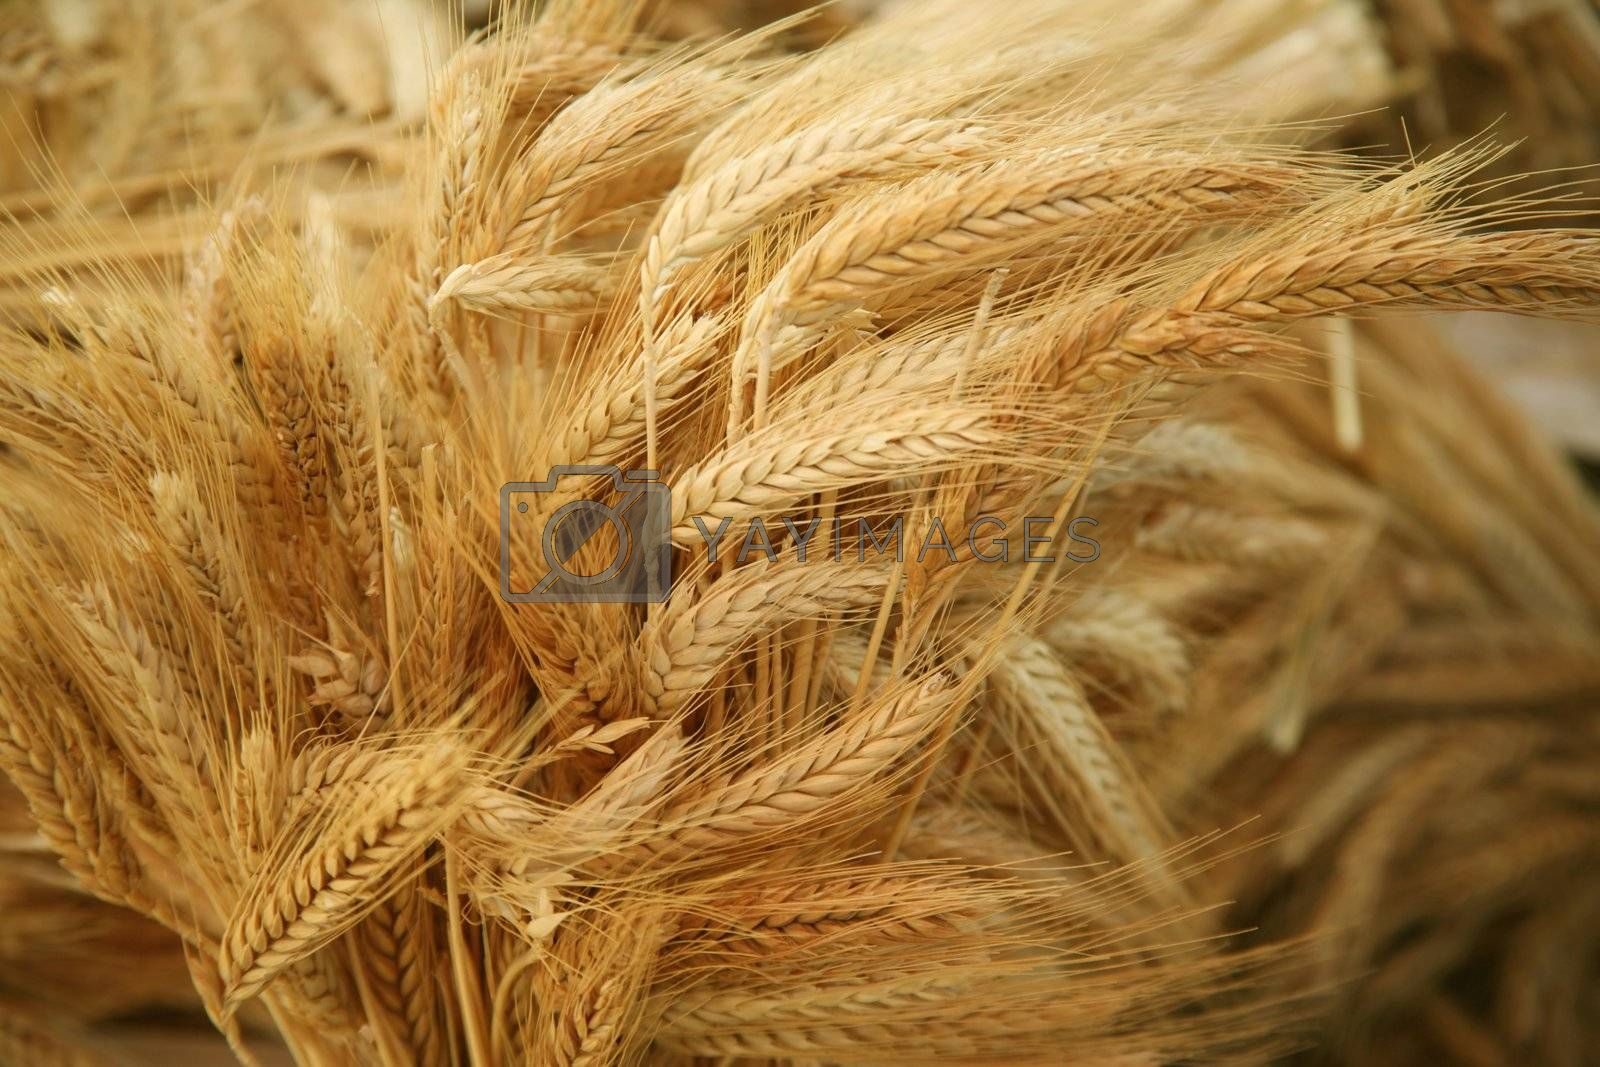 Royalty free image of Grain ears by scrappinstacy